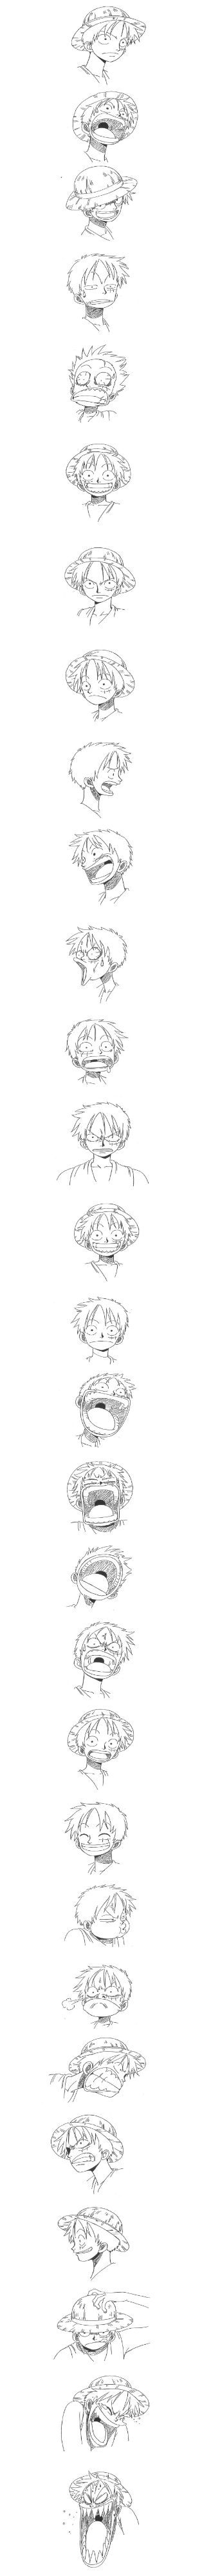 """""""Monkey D. Luffy"""" by 尾田 栄一郎 Eiichiro Oda*  One Piece ワンピース 